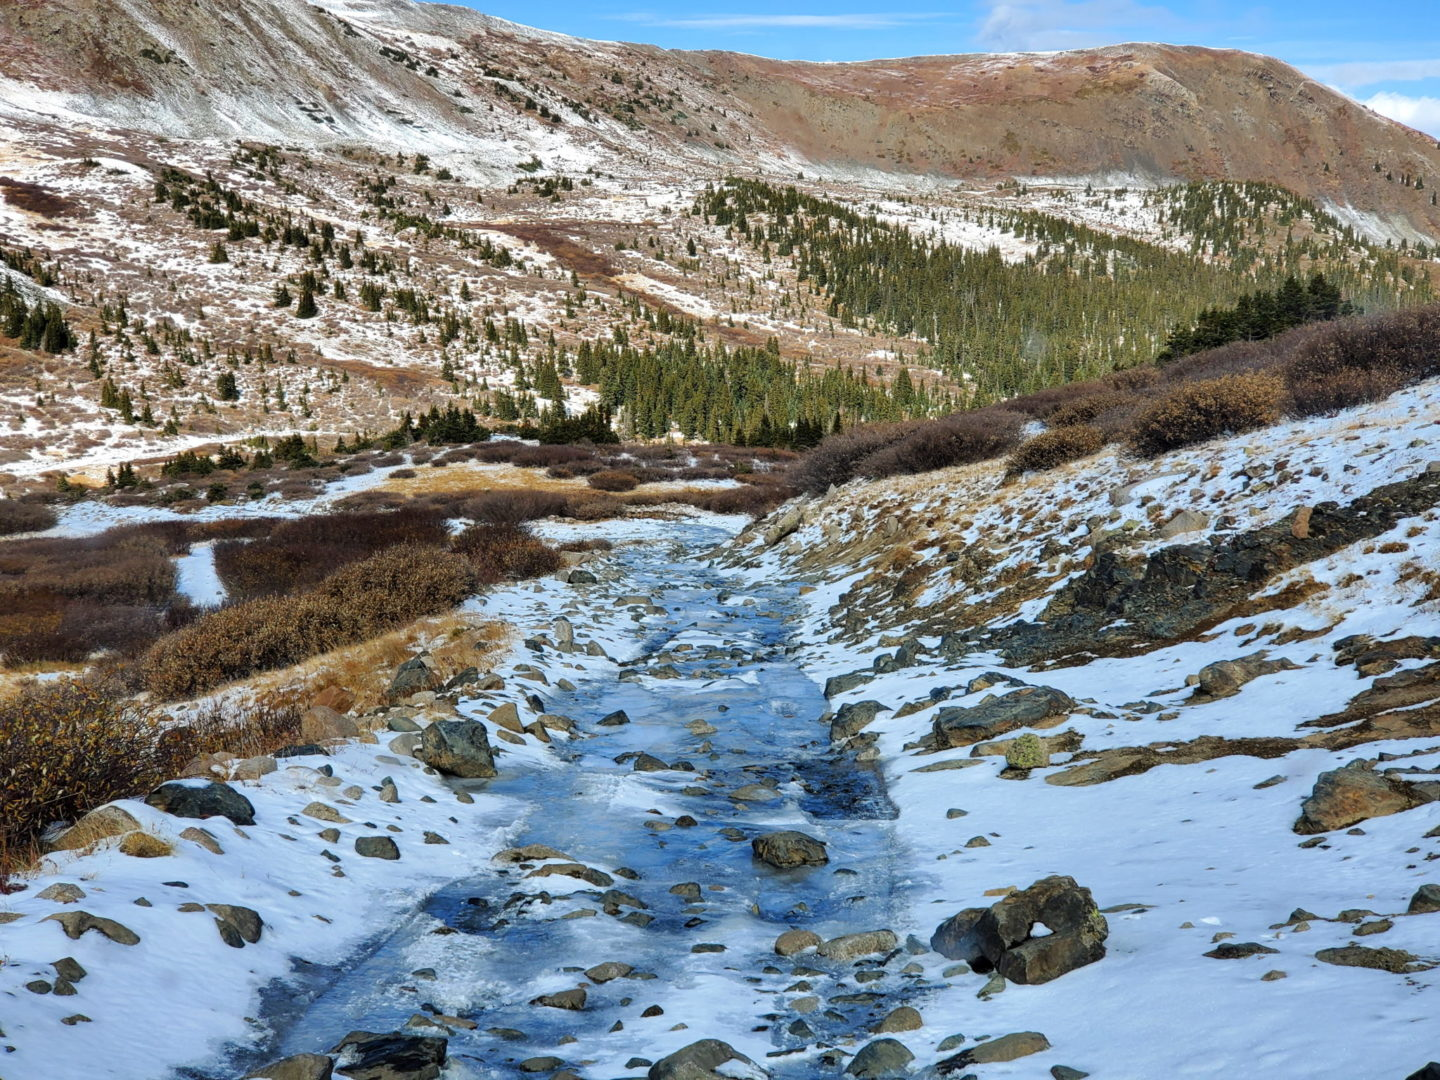 Ice becomes an issue coming down the north side of Tincup Pass